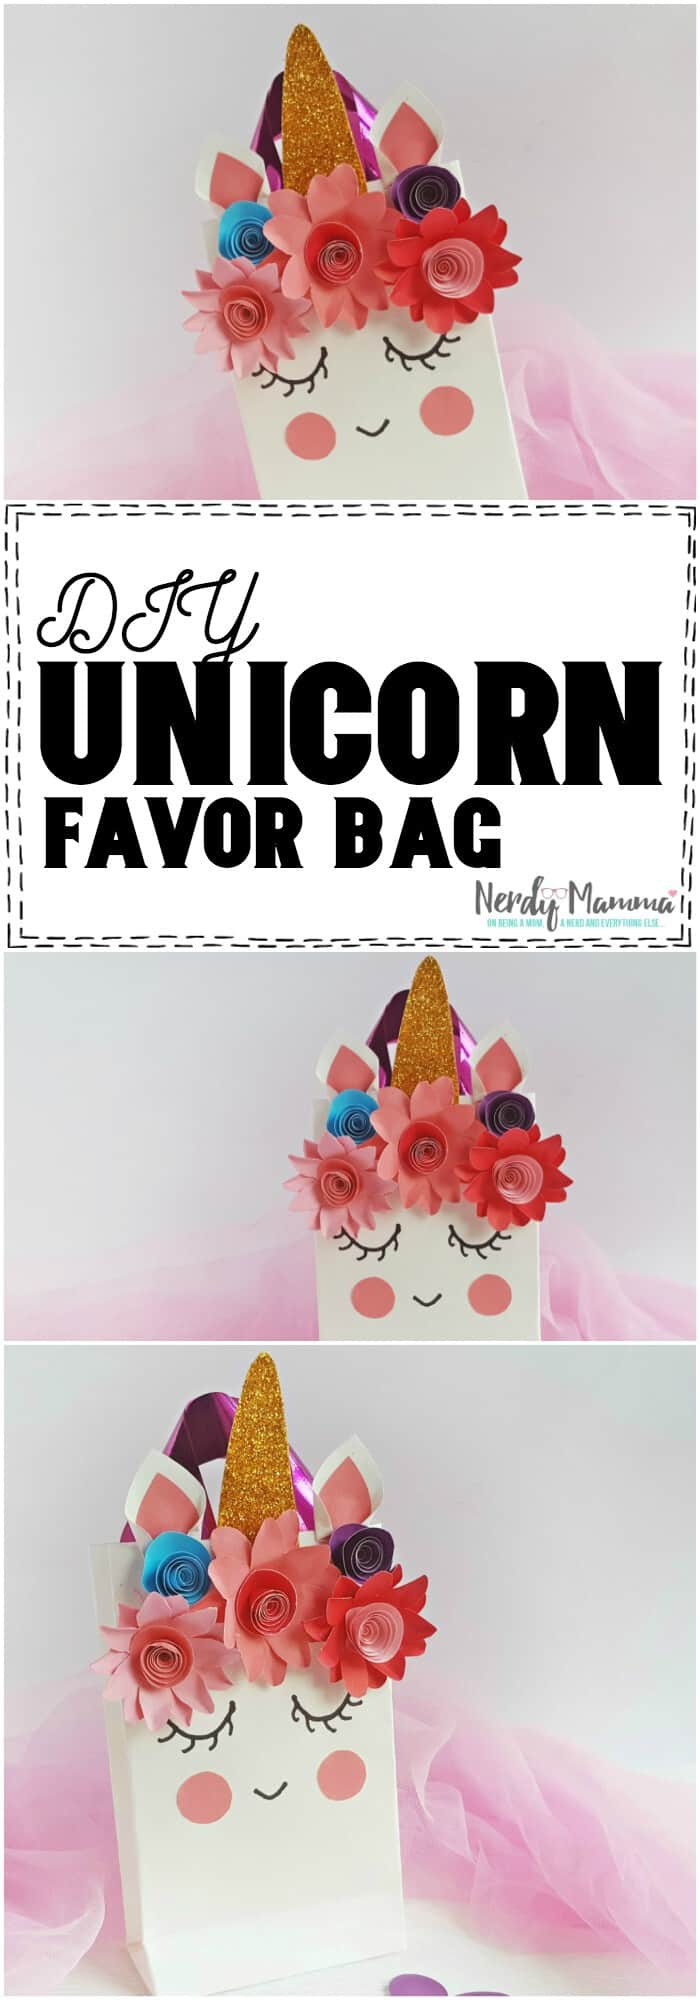 OMG! This Unicorn Favor Bag is such a cute DIY project! I would love to make these! #diy #craft #unicorn #party #favorbag #partydiy